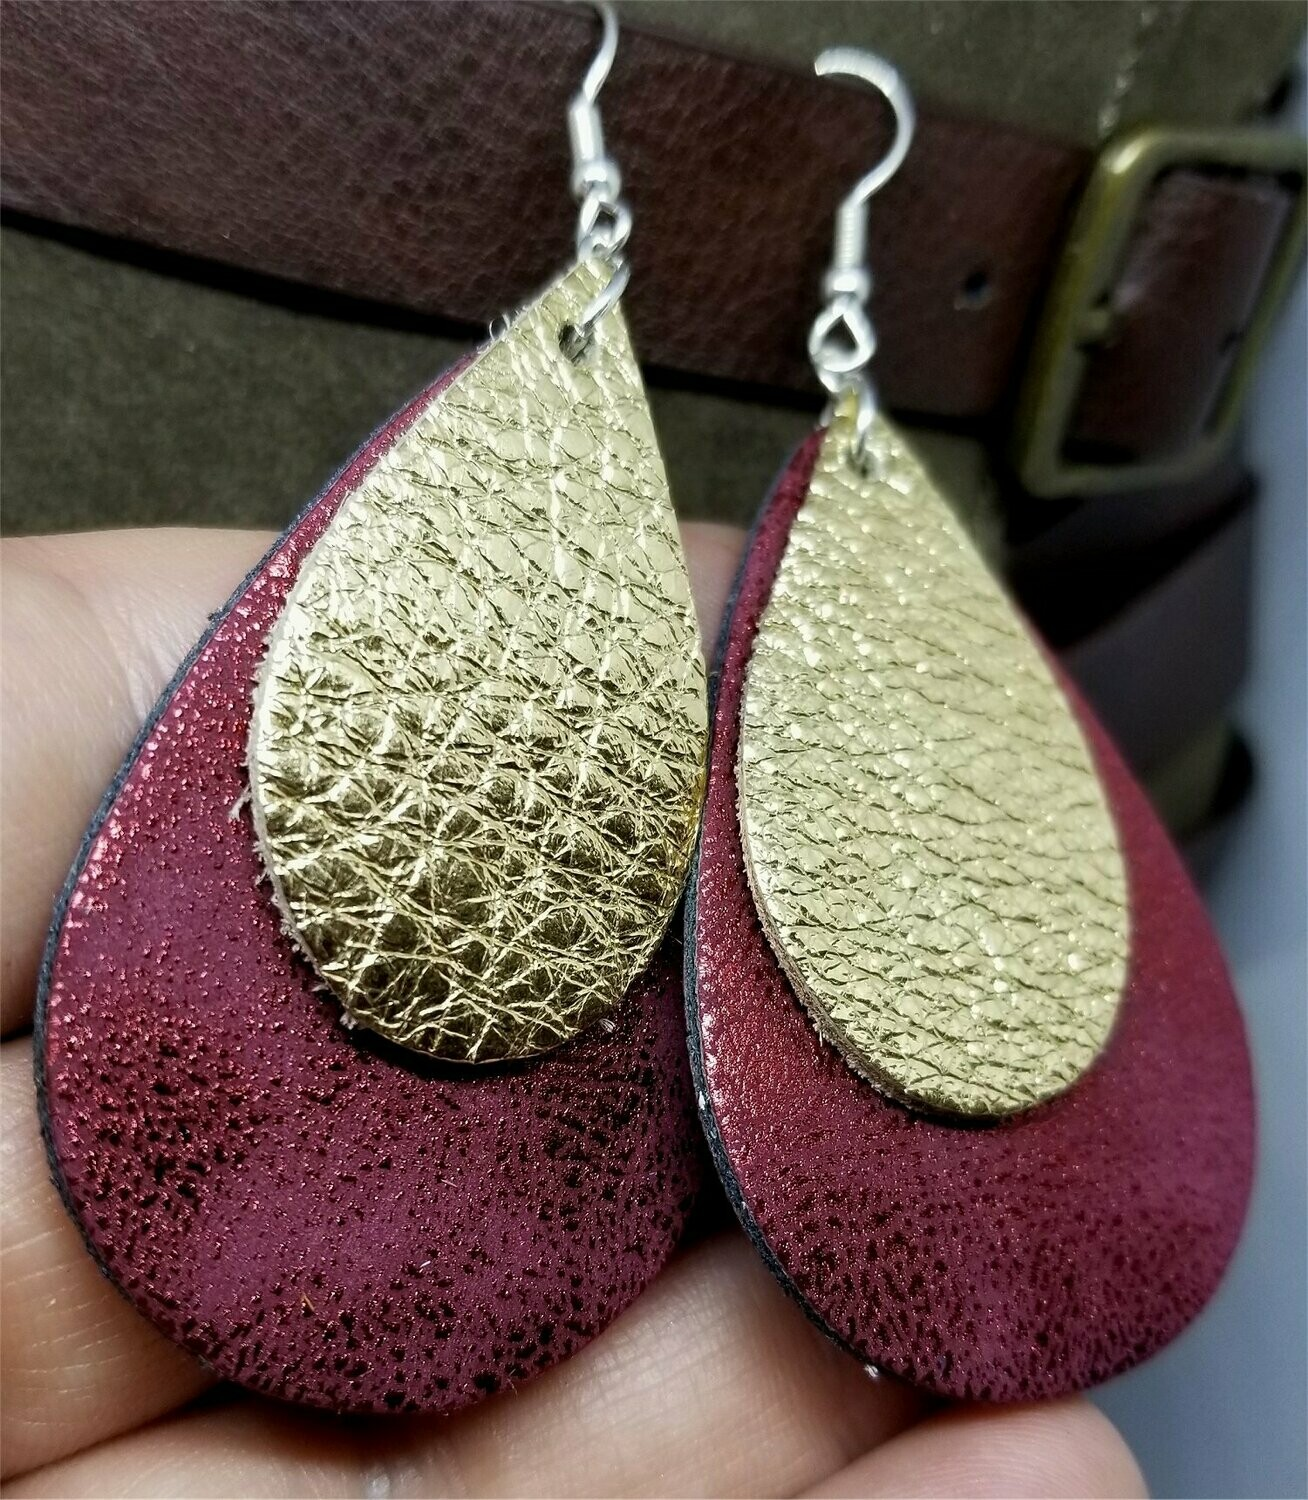 Worn Red Tear Drop Shaped FAUX Leather Earrings with Gold Metallic REAL Leather Teardrop Overlay